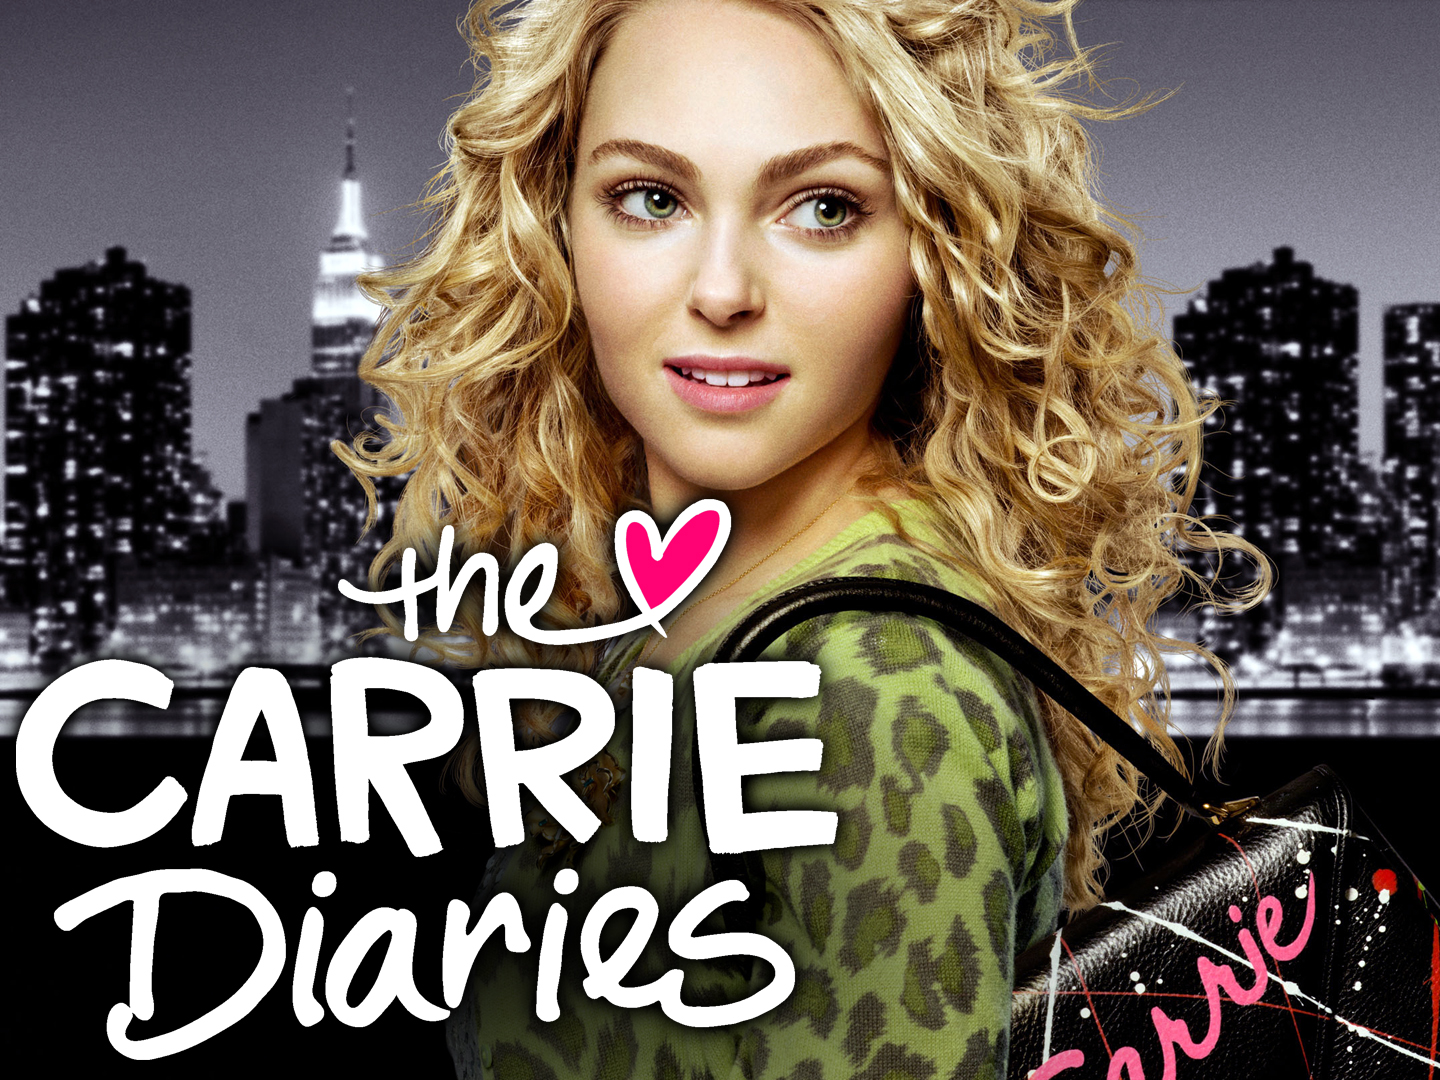 carrie diaries CW Annasophia Rob